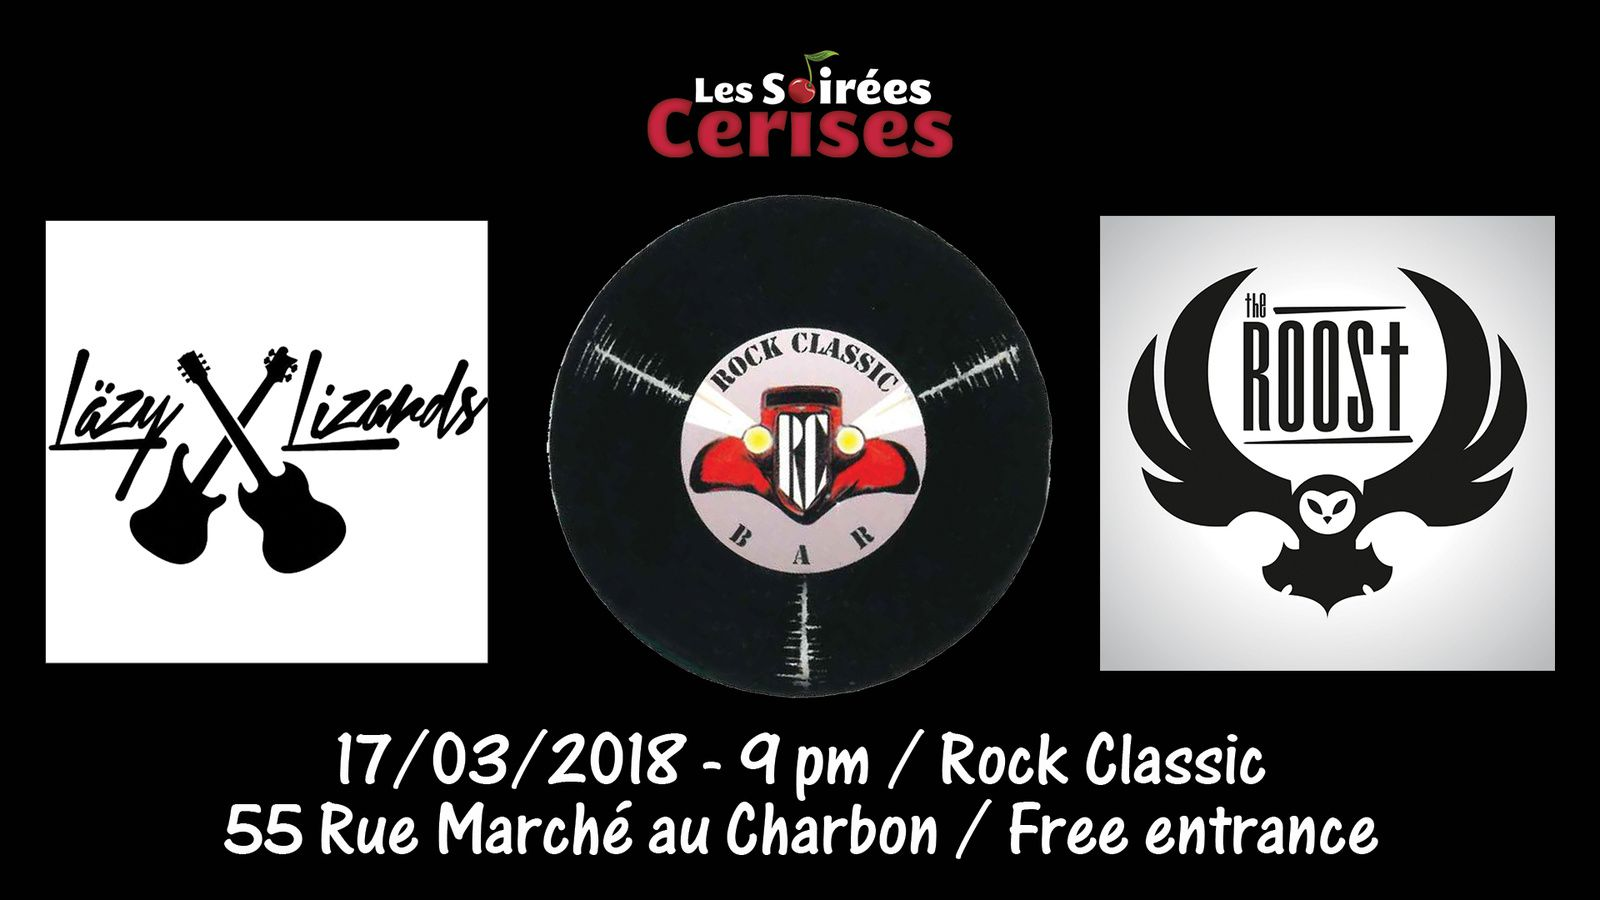 ▶ Photos / Videos - The Roost @ Rock Classic - 17/03/2018